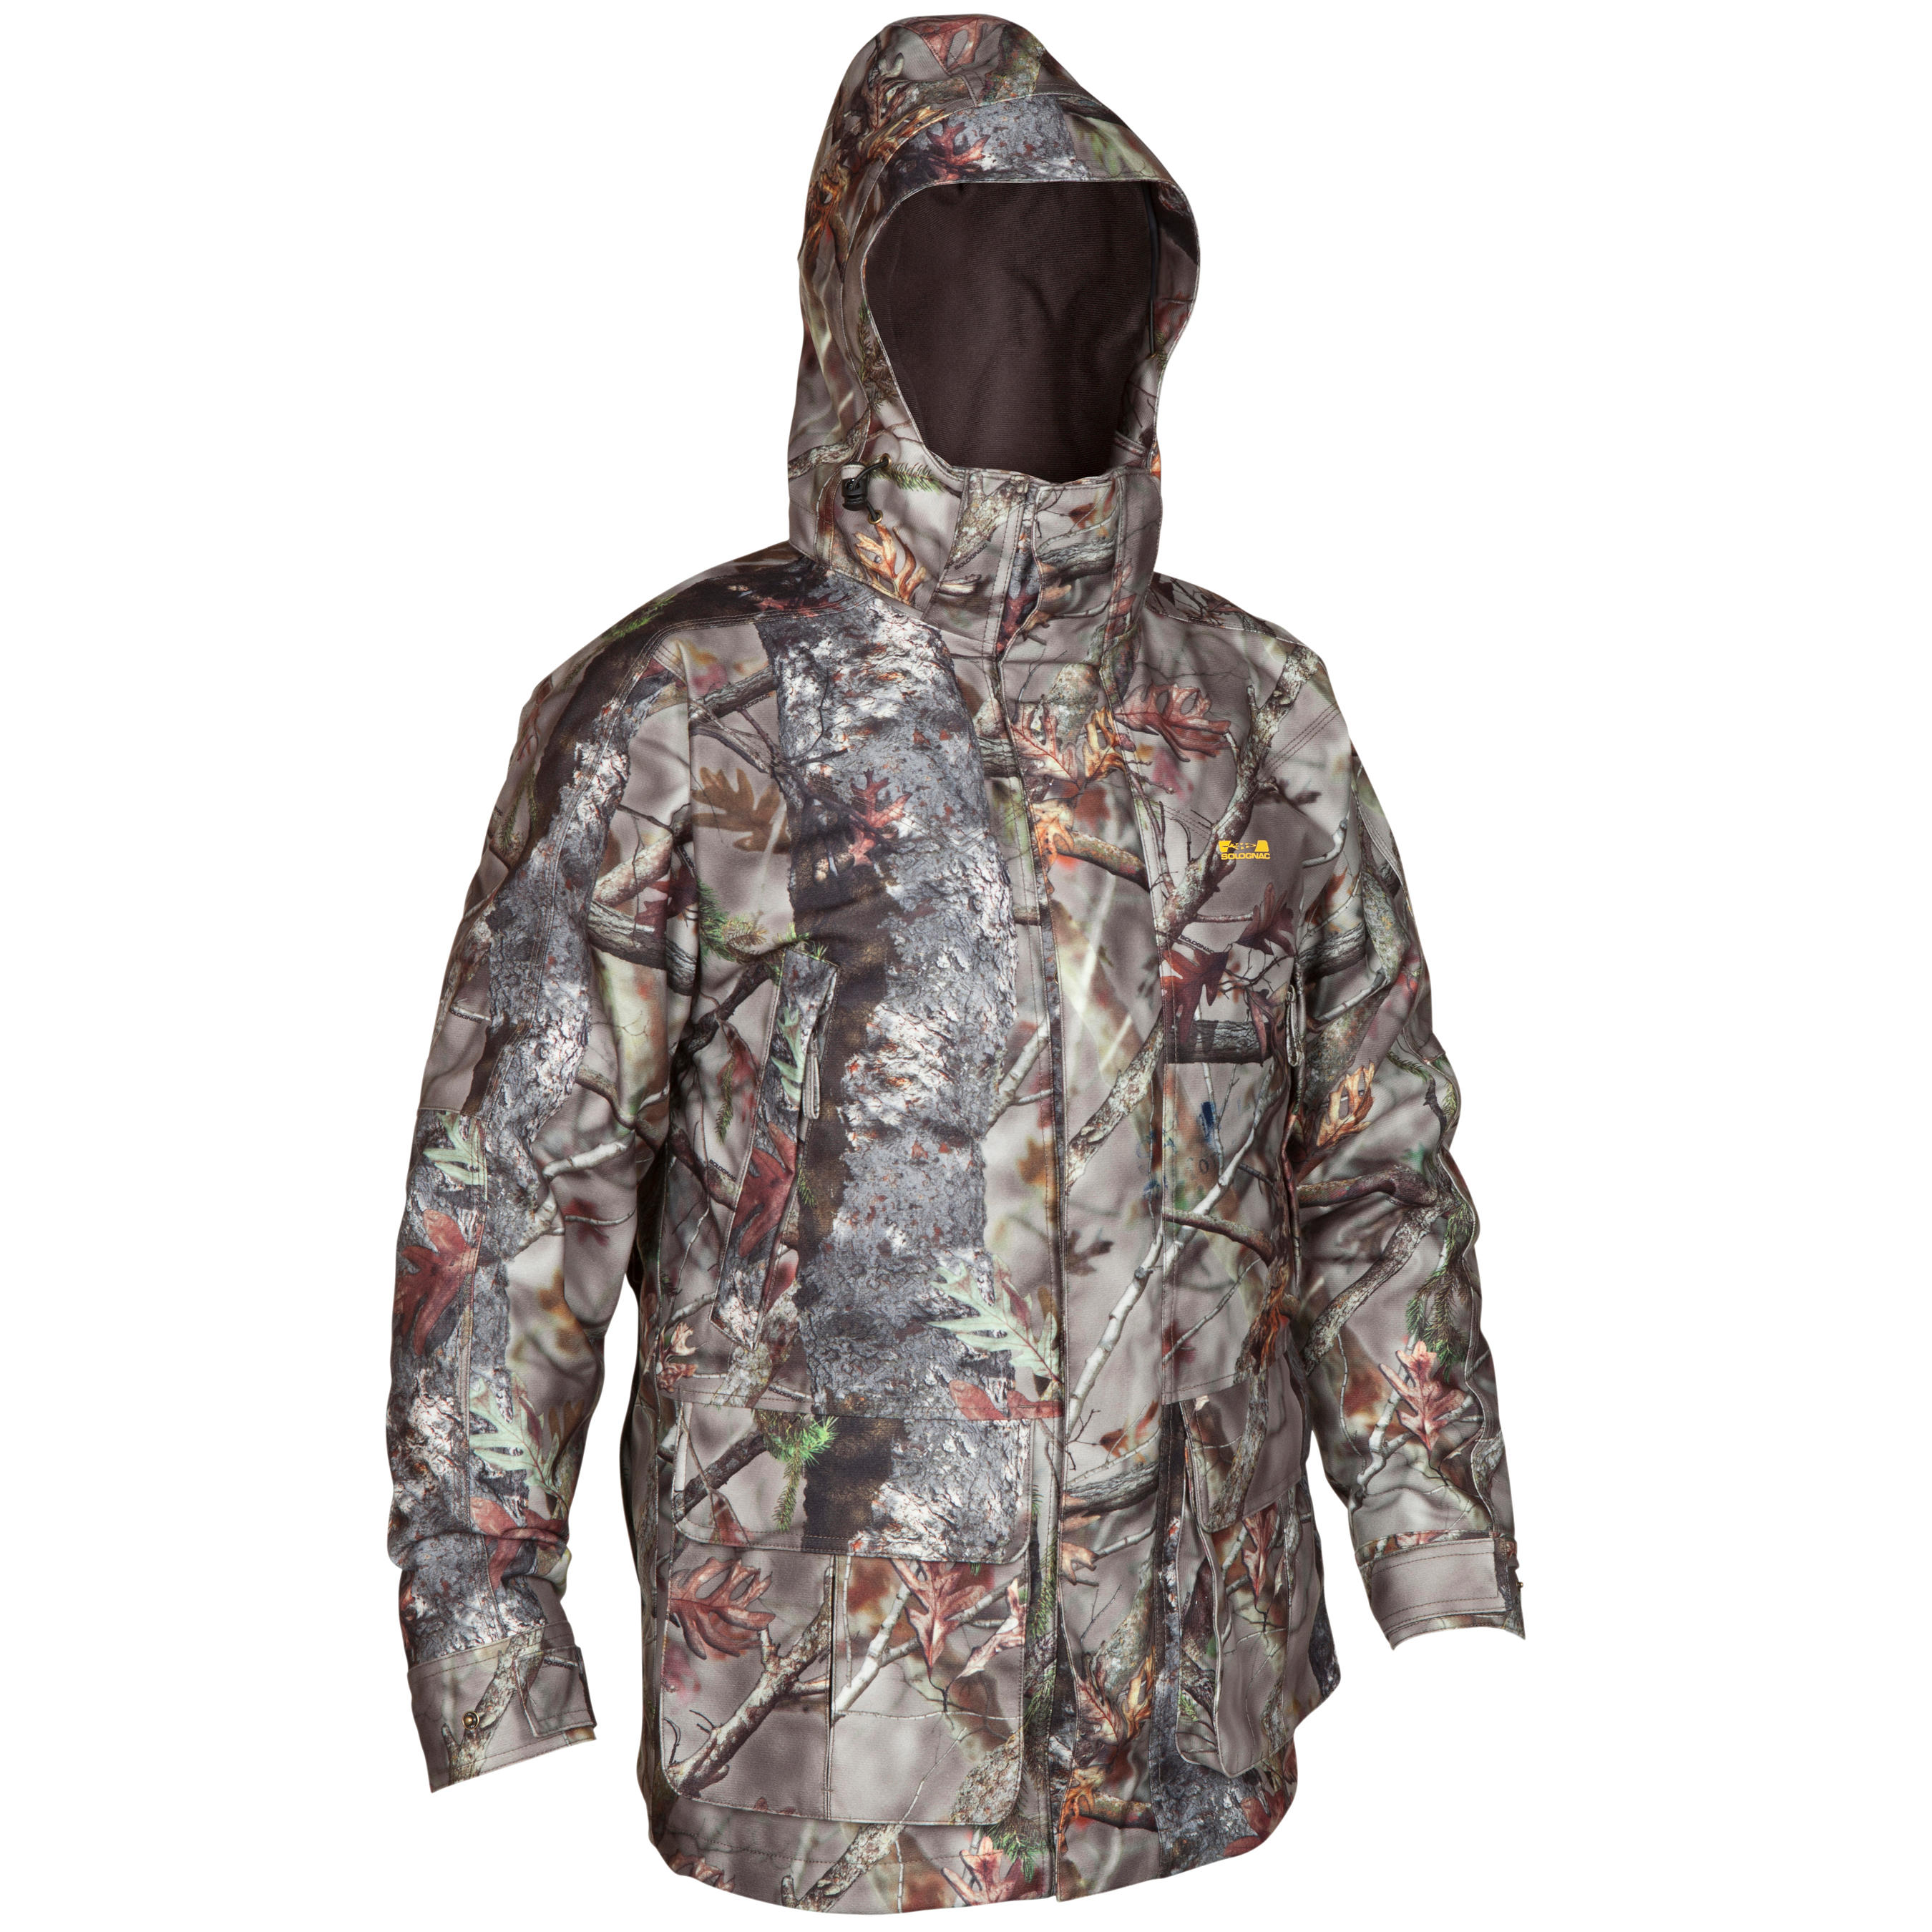 VESTE CHASSE IMPERMÉABLE POSIKAM 300 CAMOUFLAGE MARRON